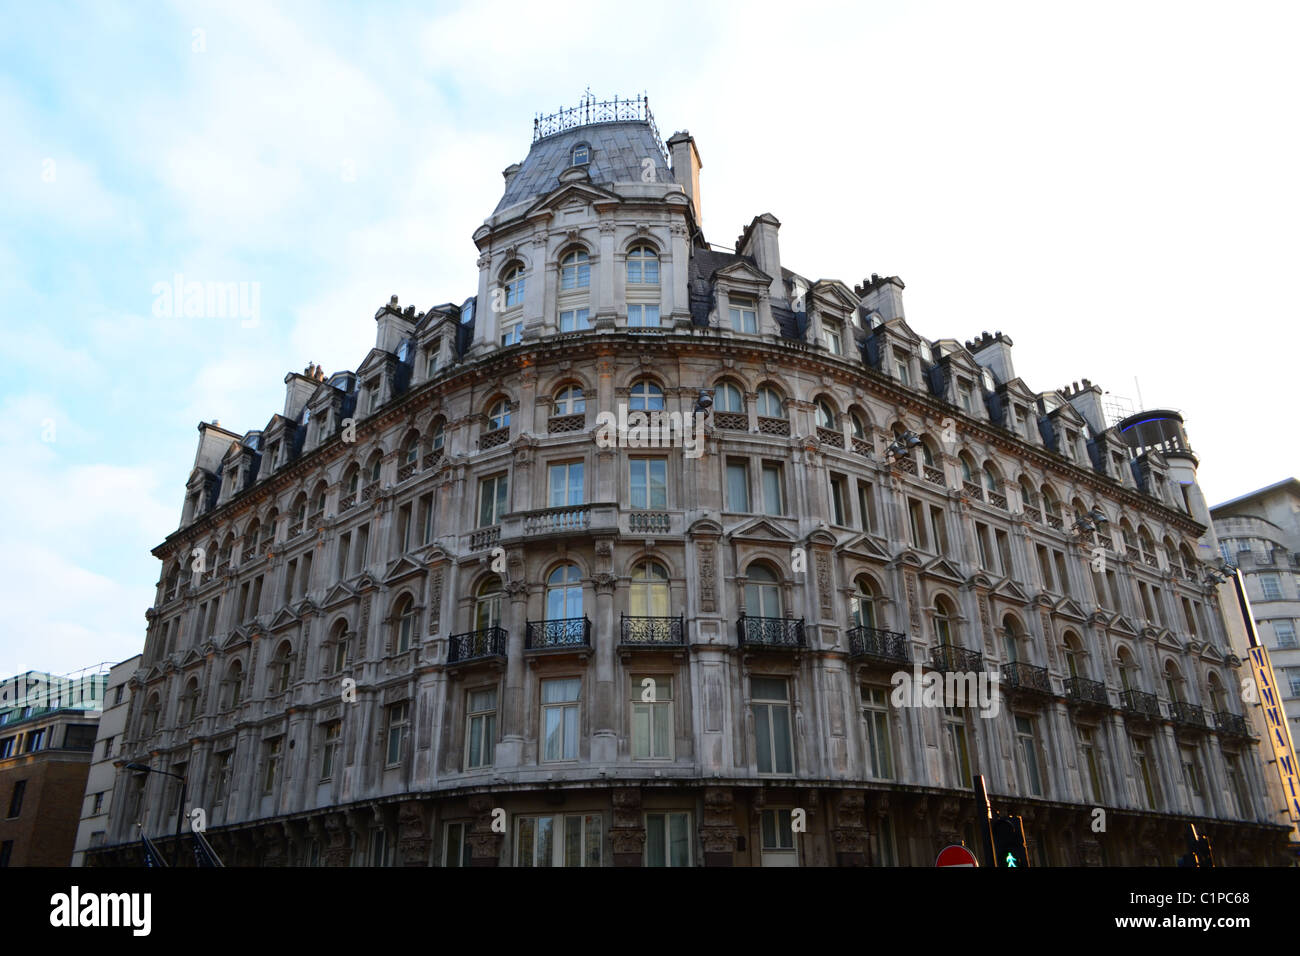 Traditional stone facade near Leicester Square, London - Stock Image